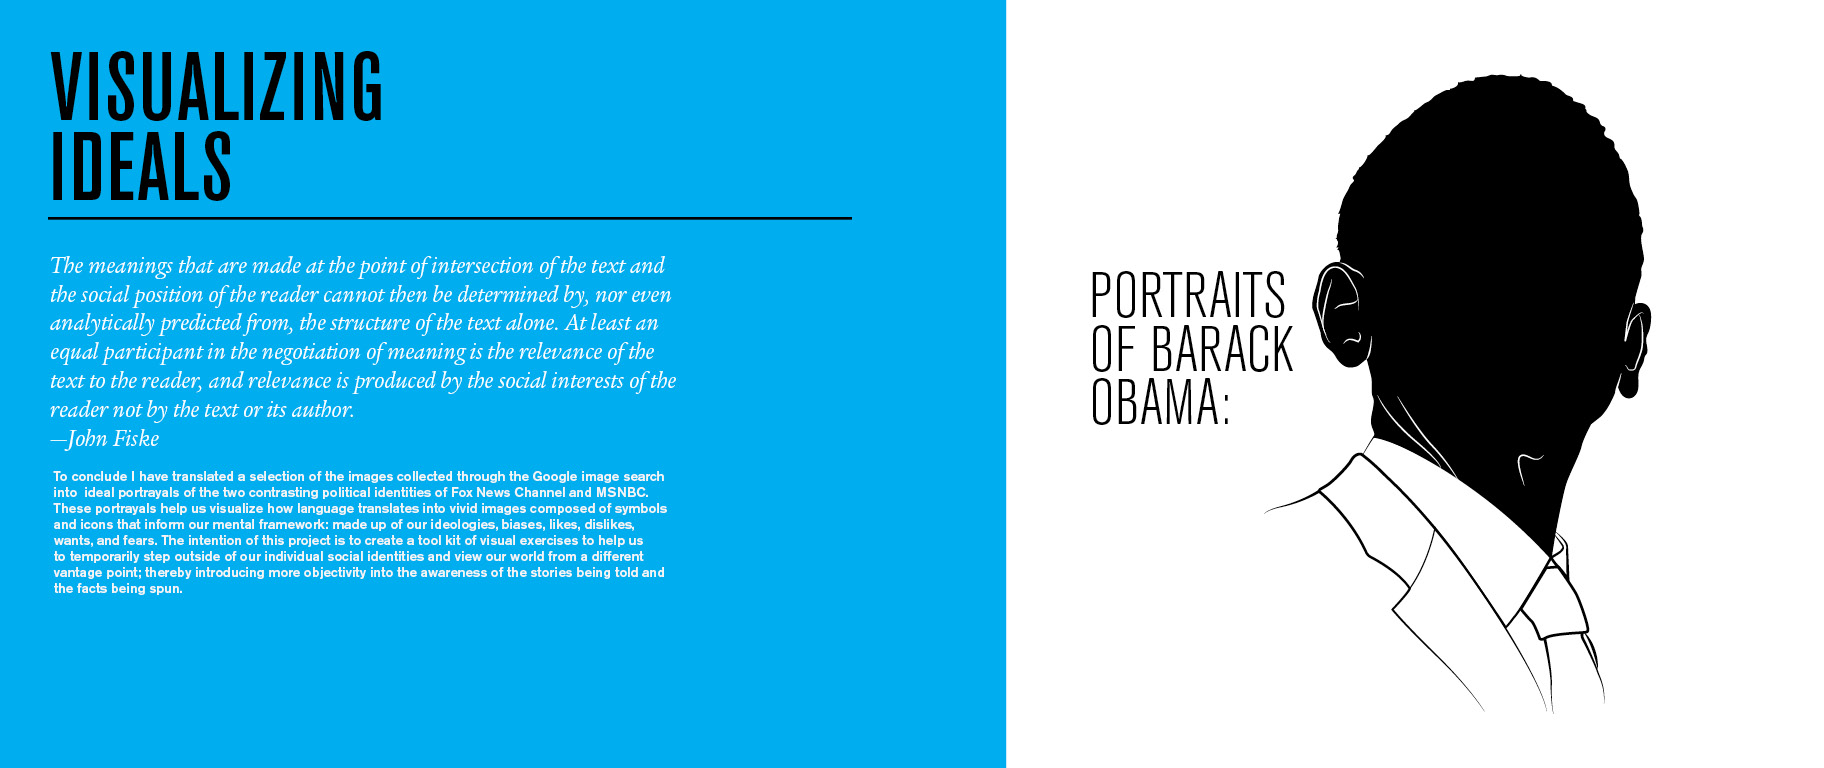 OBAMA-Portraits-Blurb-Pages-1311